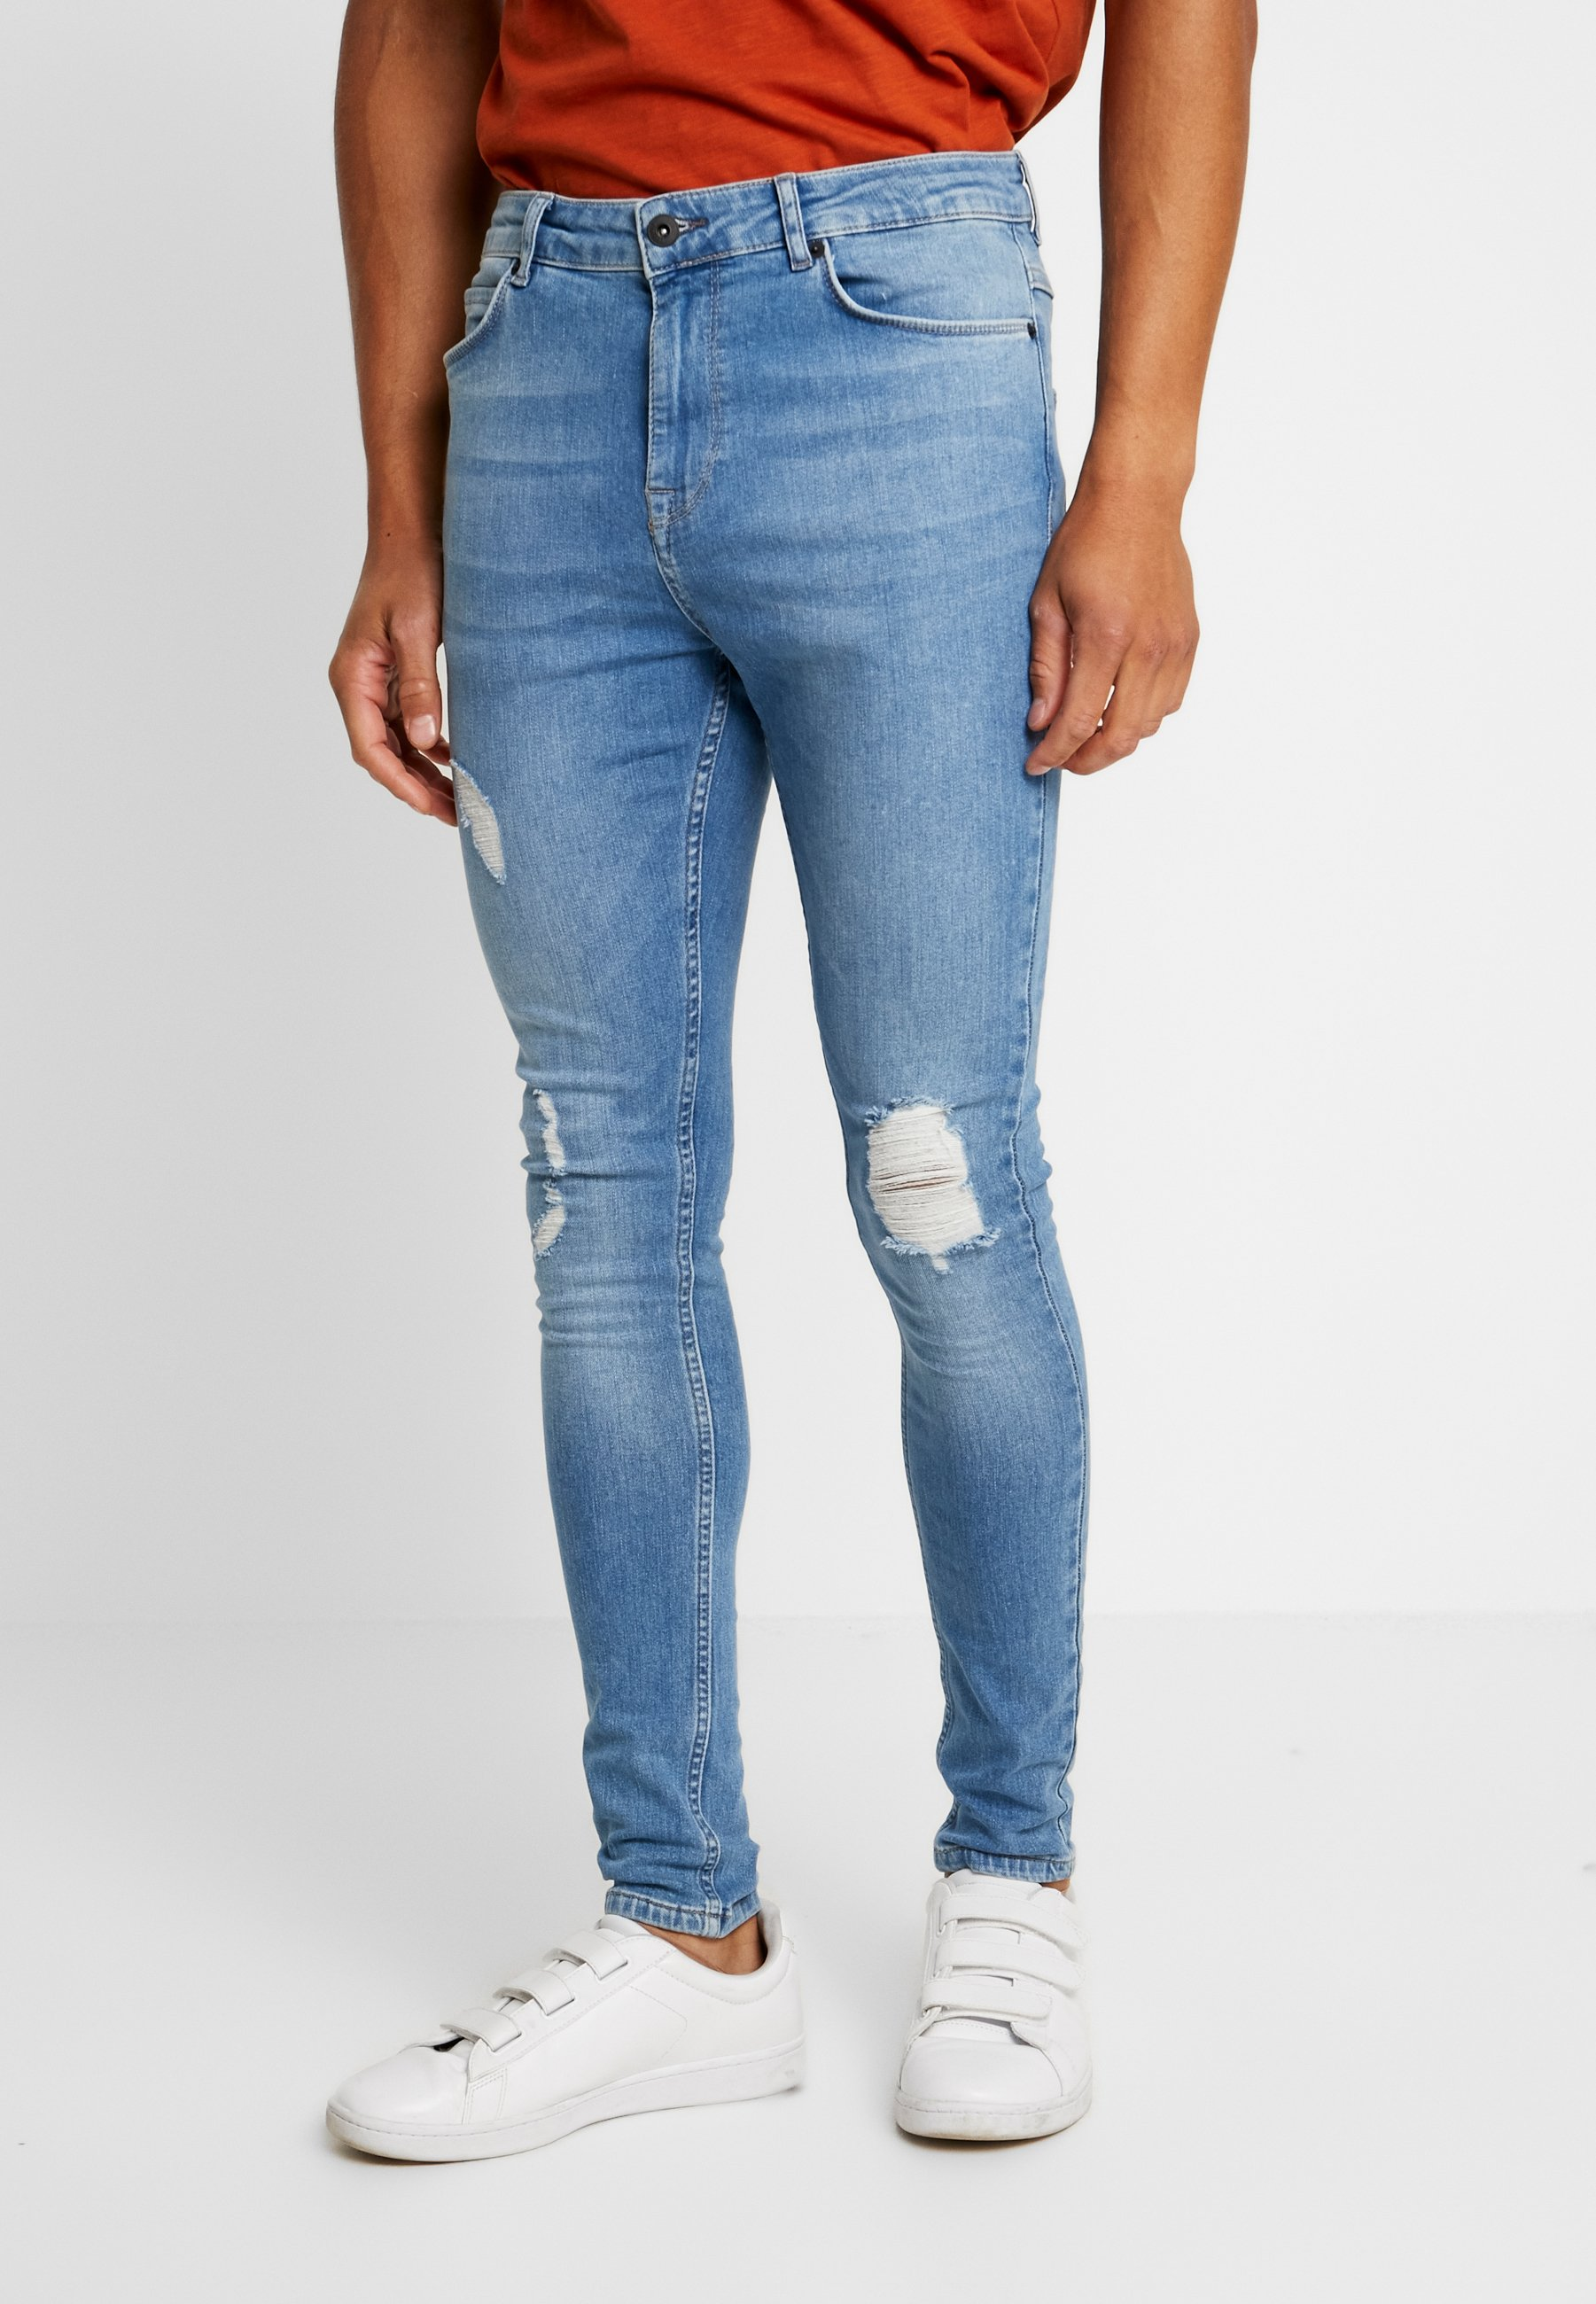 Solid Stan Blue Super SkinnyJeans Light ZXiPOkTu